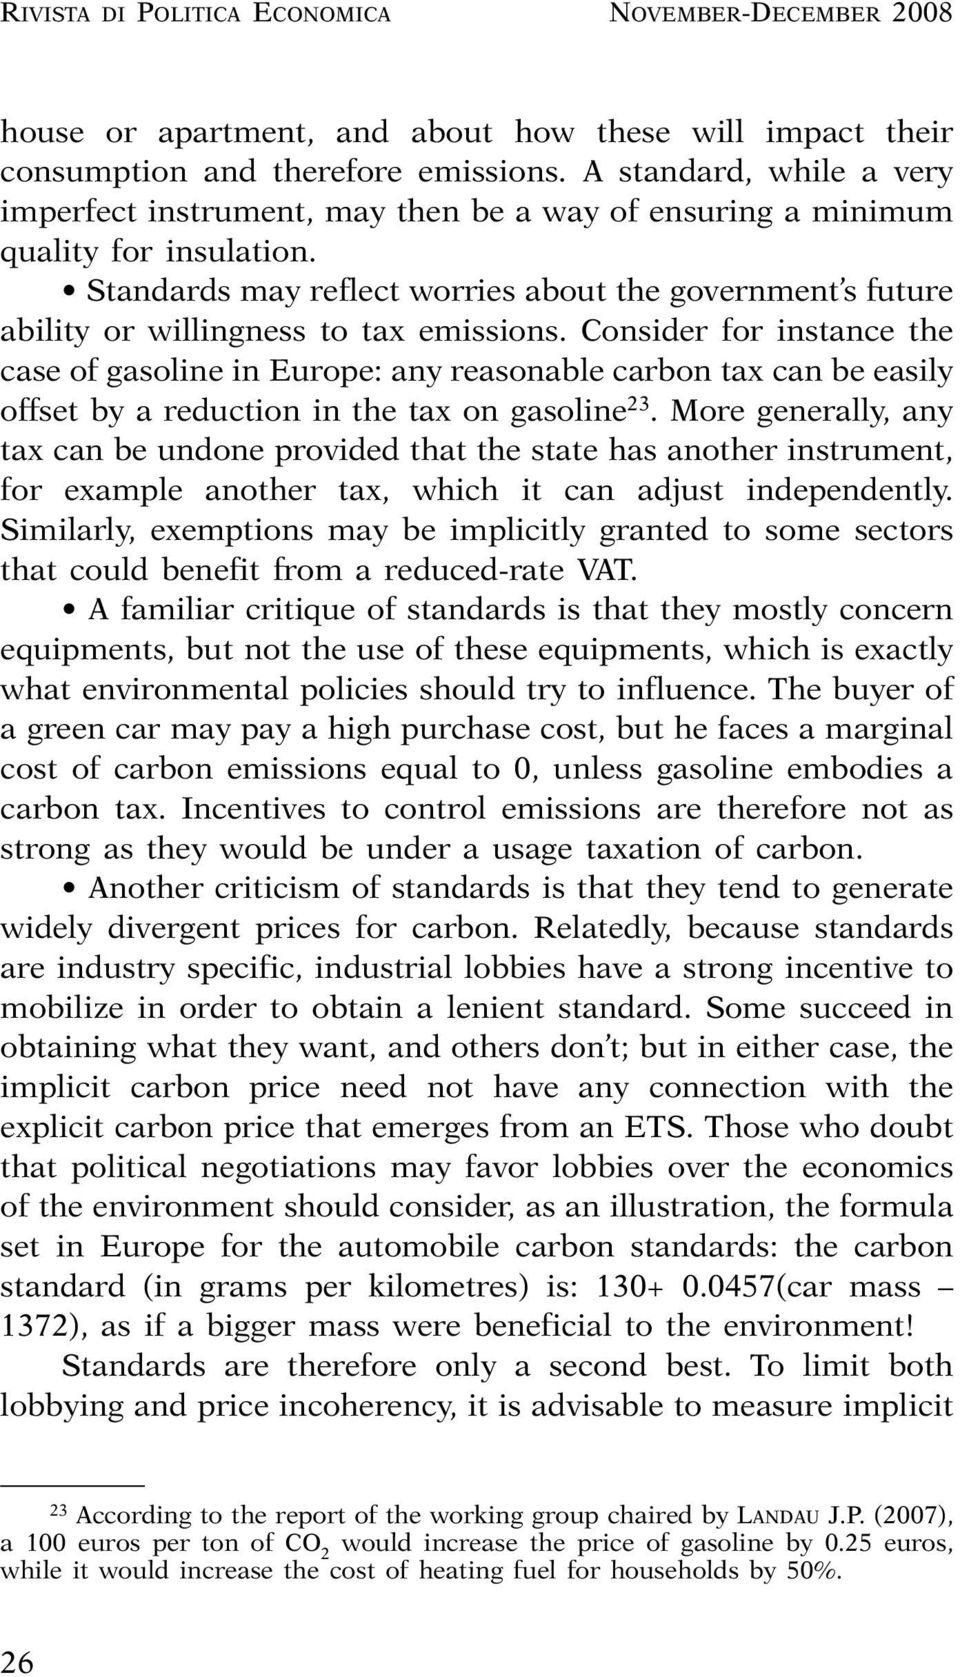 Standards may reflect worries about the government s future ability or willingness to tax emissions.